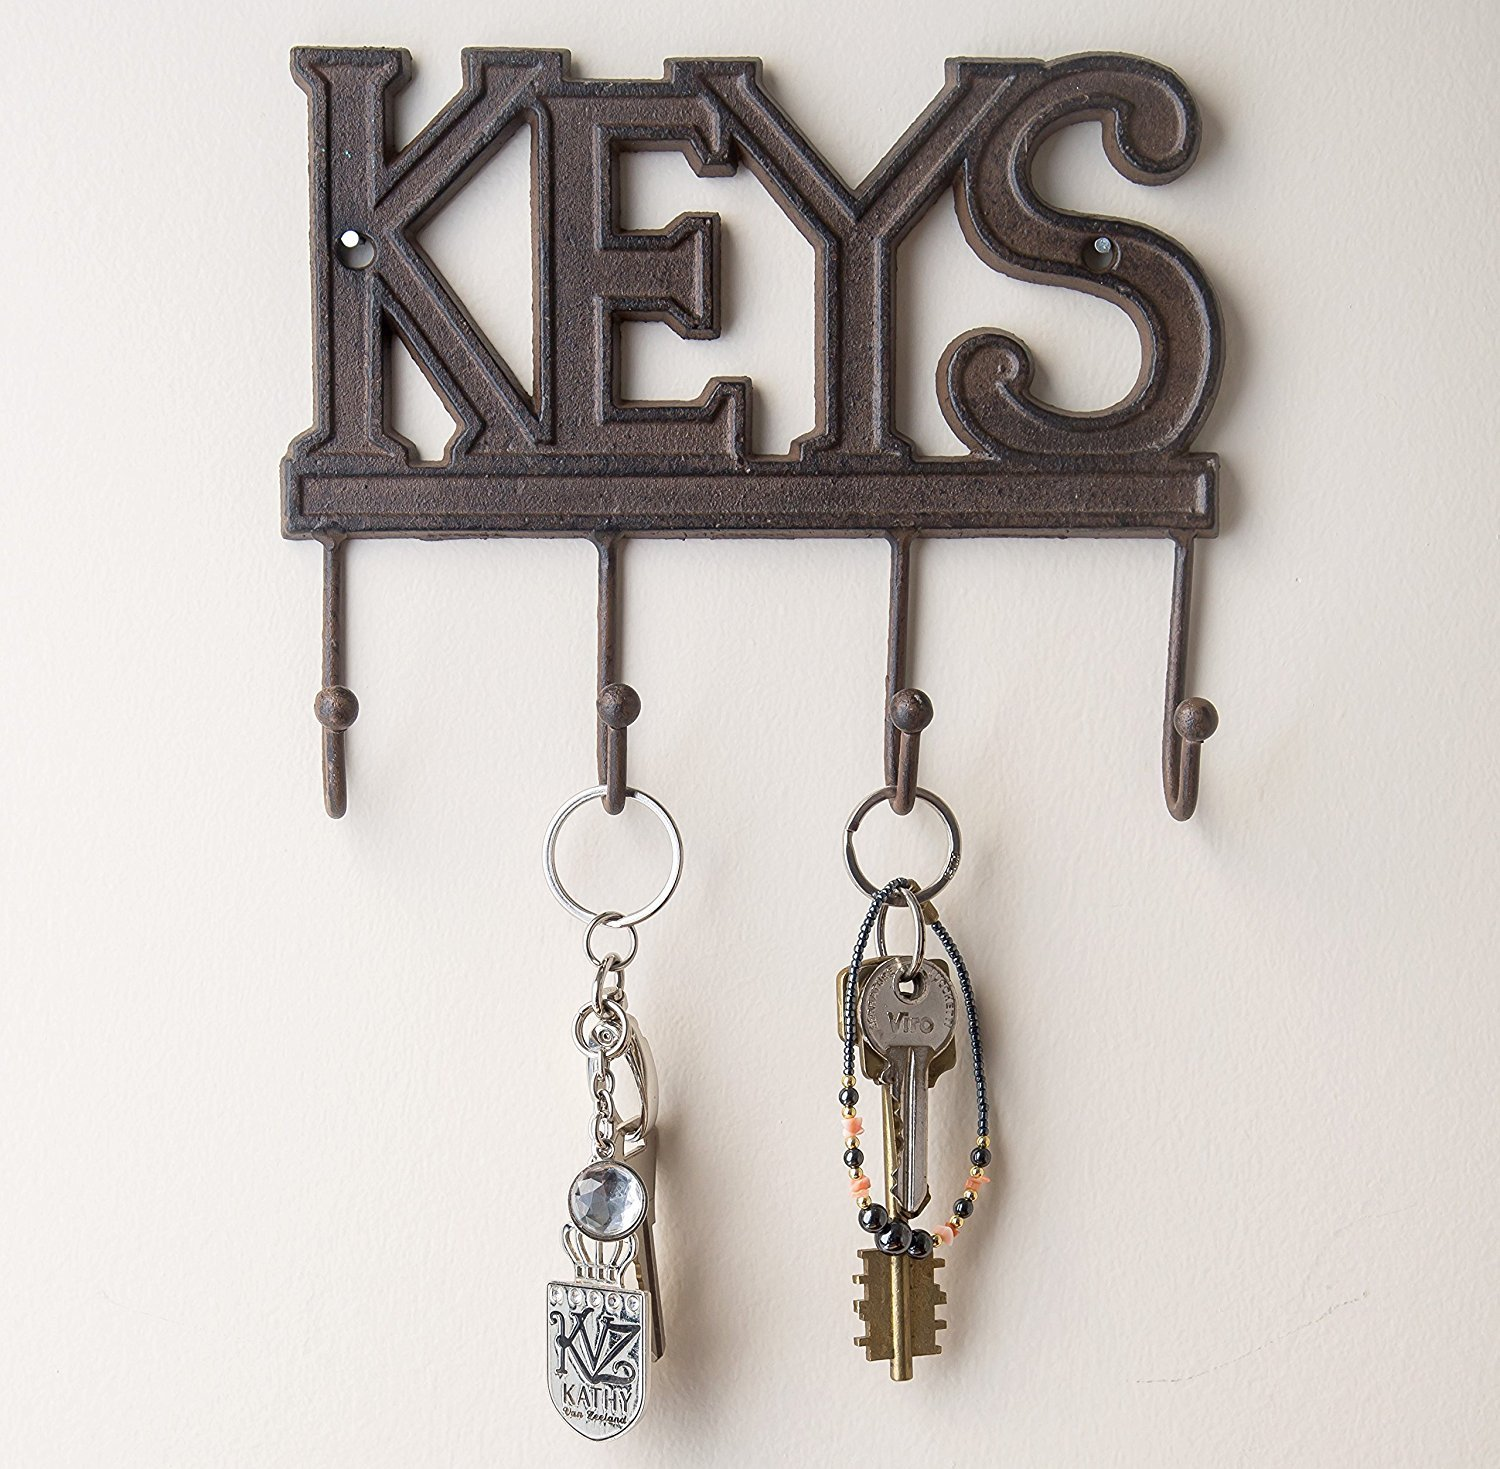 Amazon.com: Key Holder - Keys - Wall Mounted Key Hook - Rustic ...